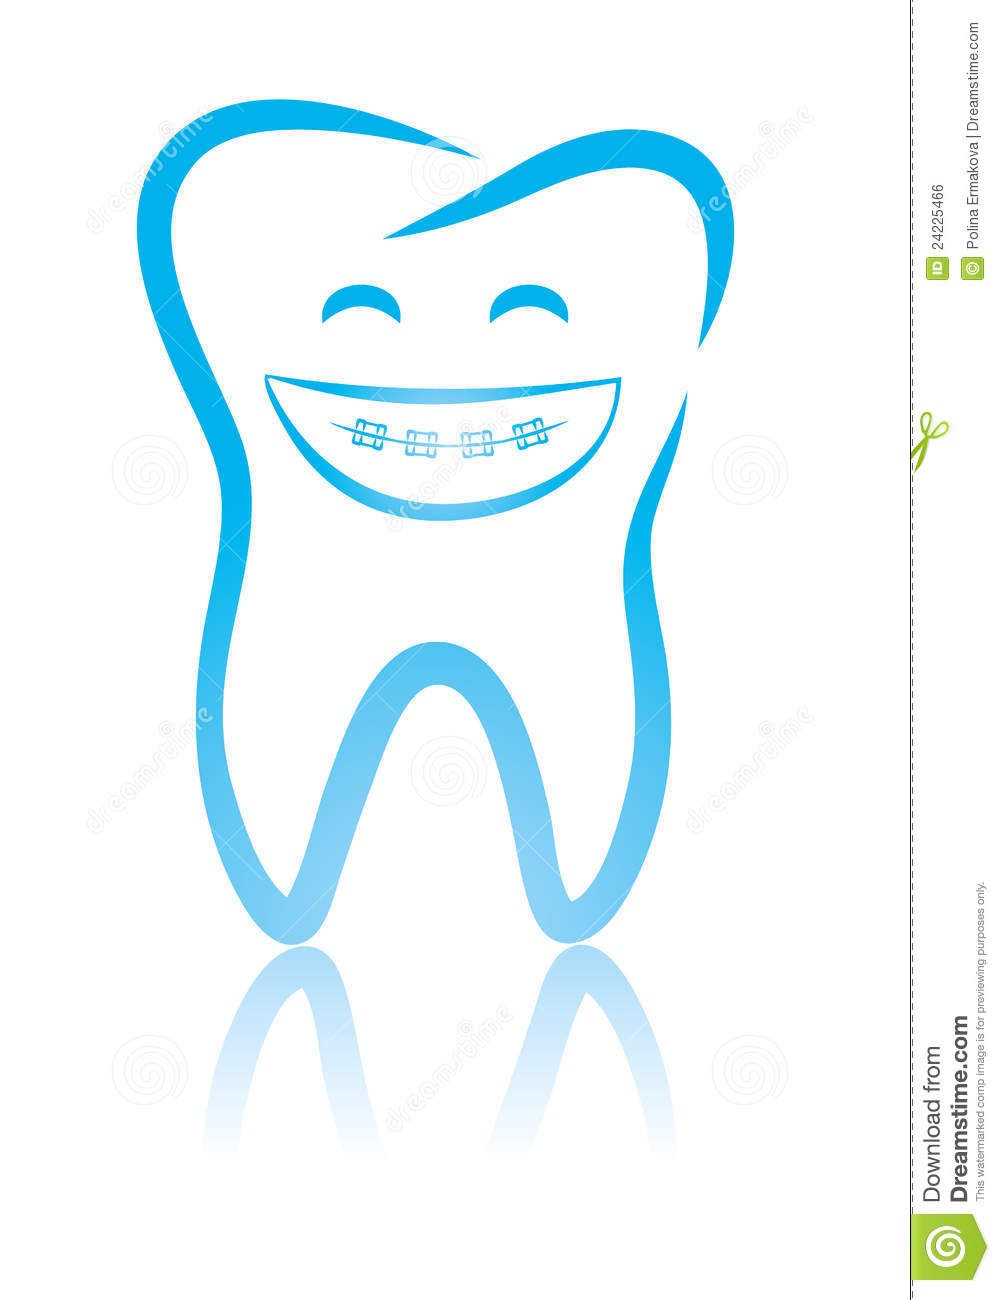 Smiling Dental Tooth With Braces Royalty Free Stock Image   Image